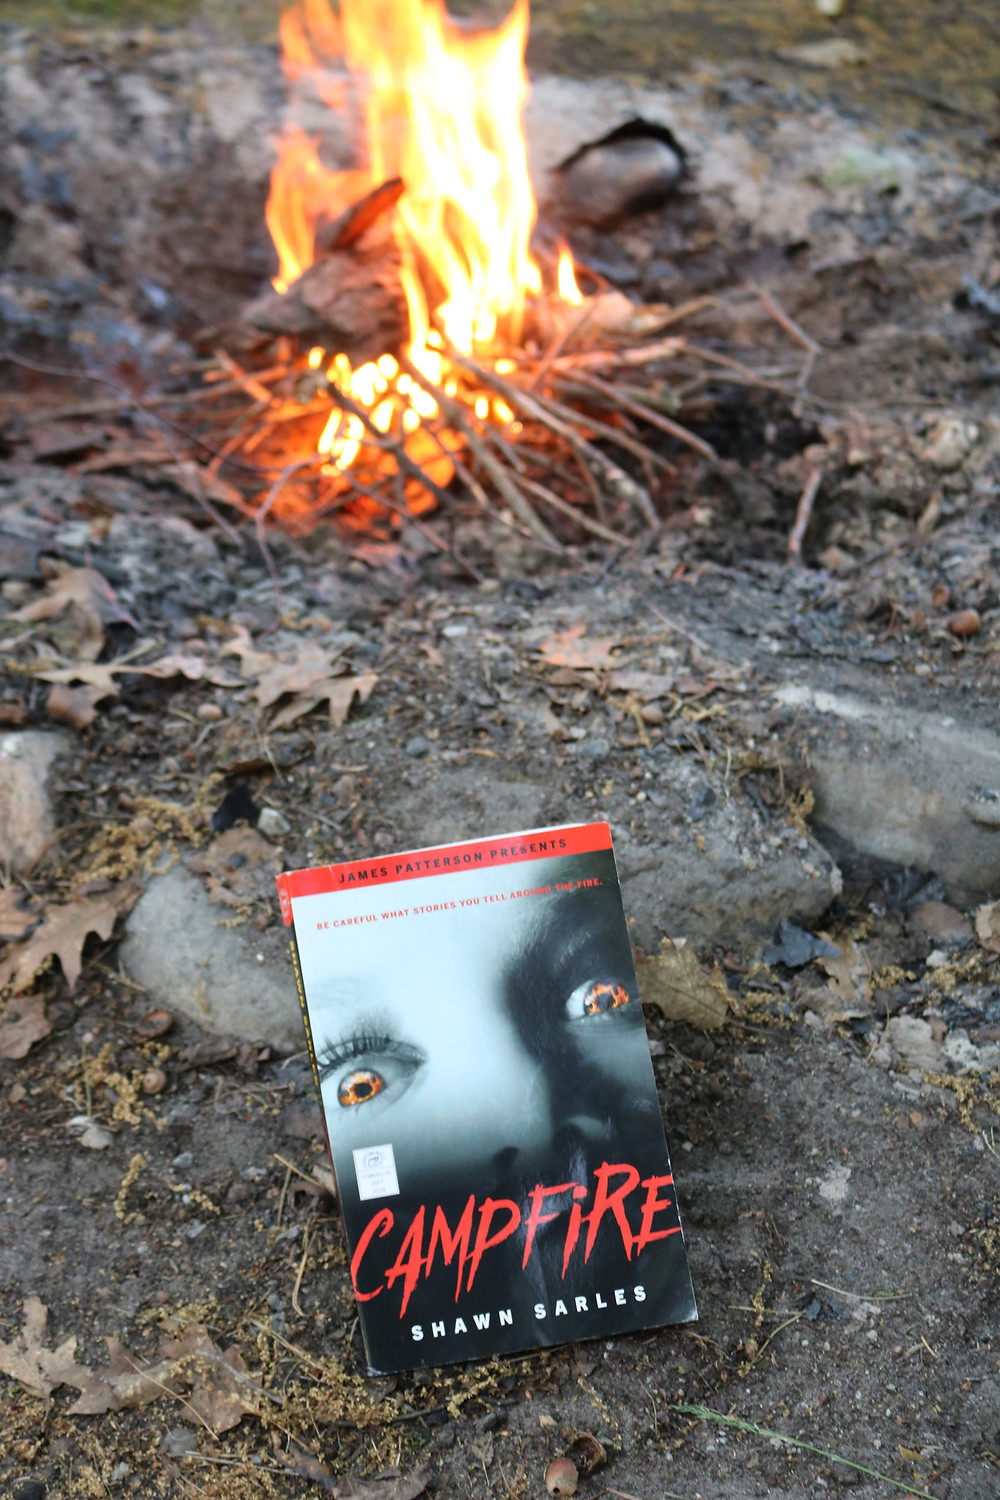 Campfire by Shawn Sarles